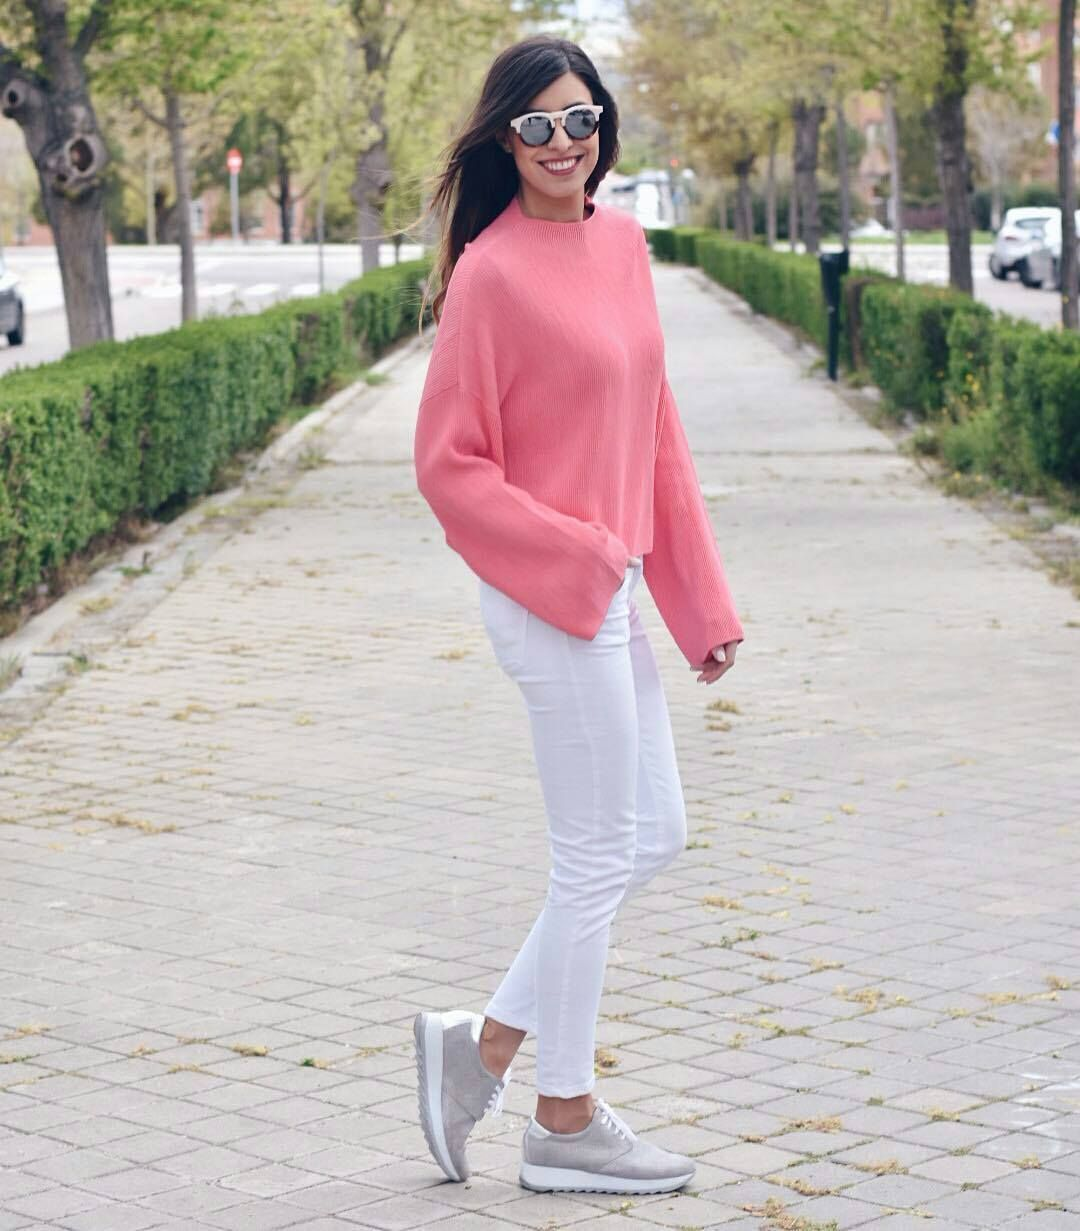 La #blogger Claudia Peris con #sneakers metalizados #LinceShoes